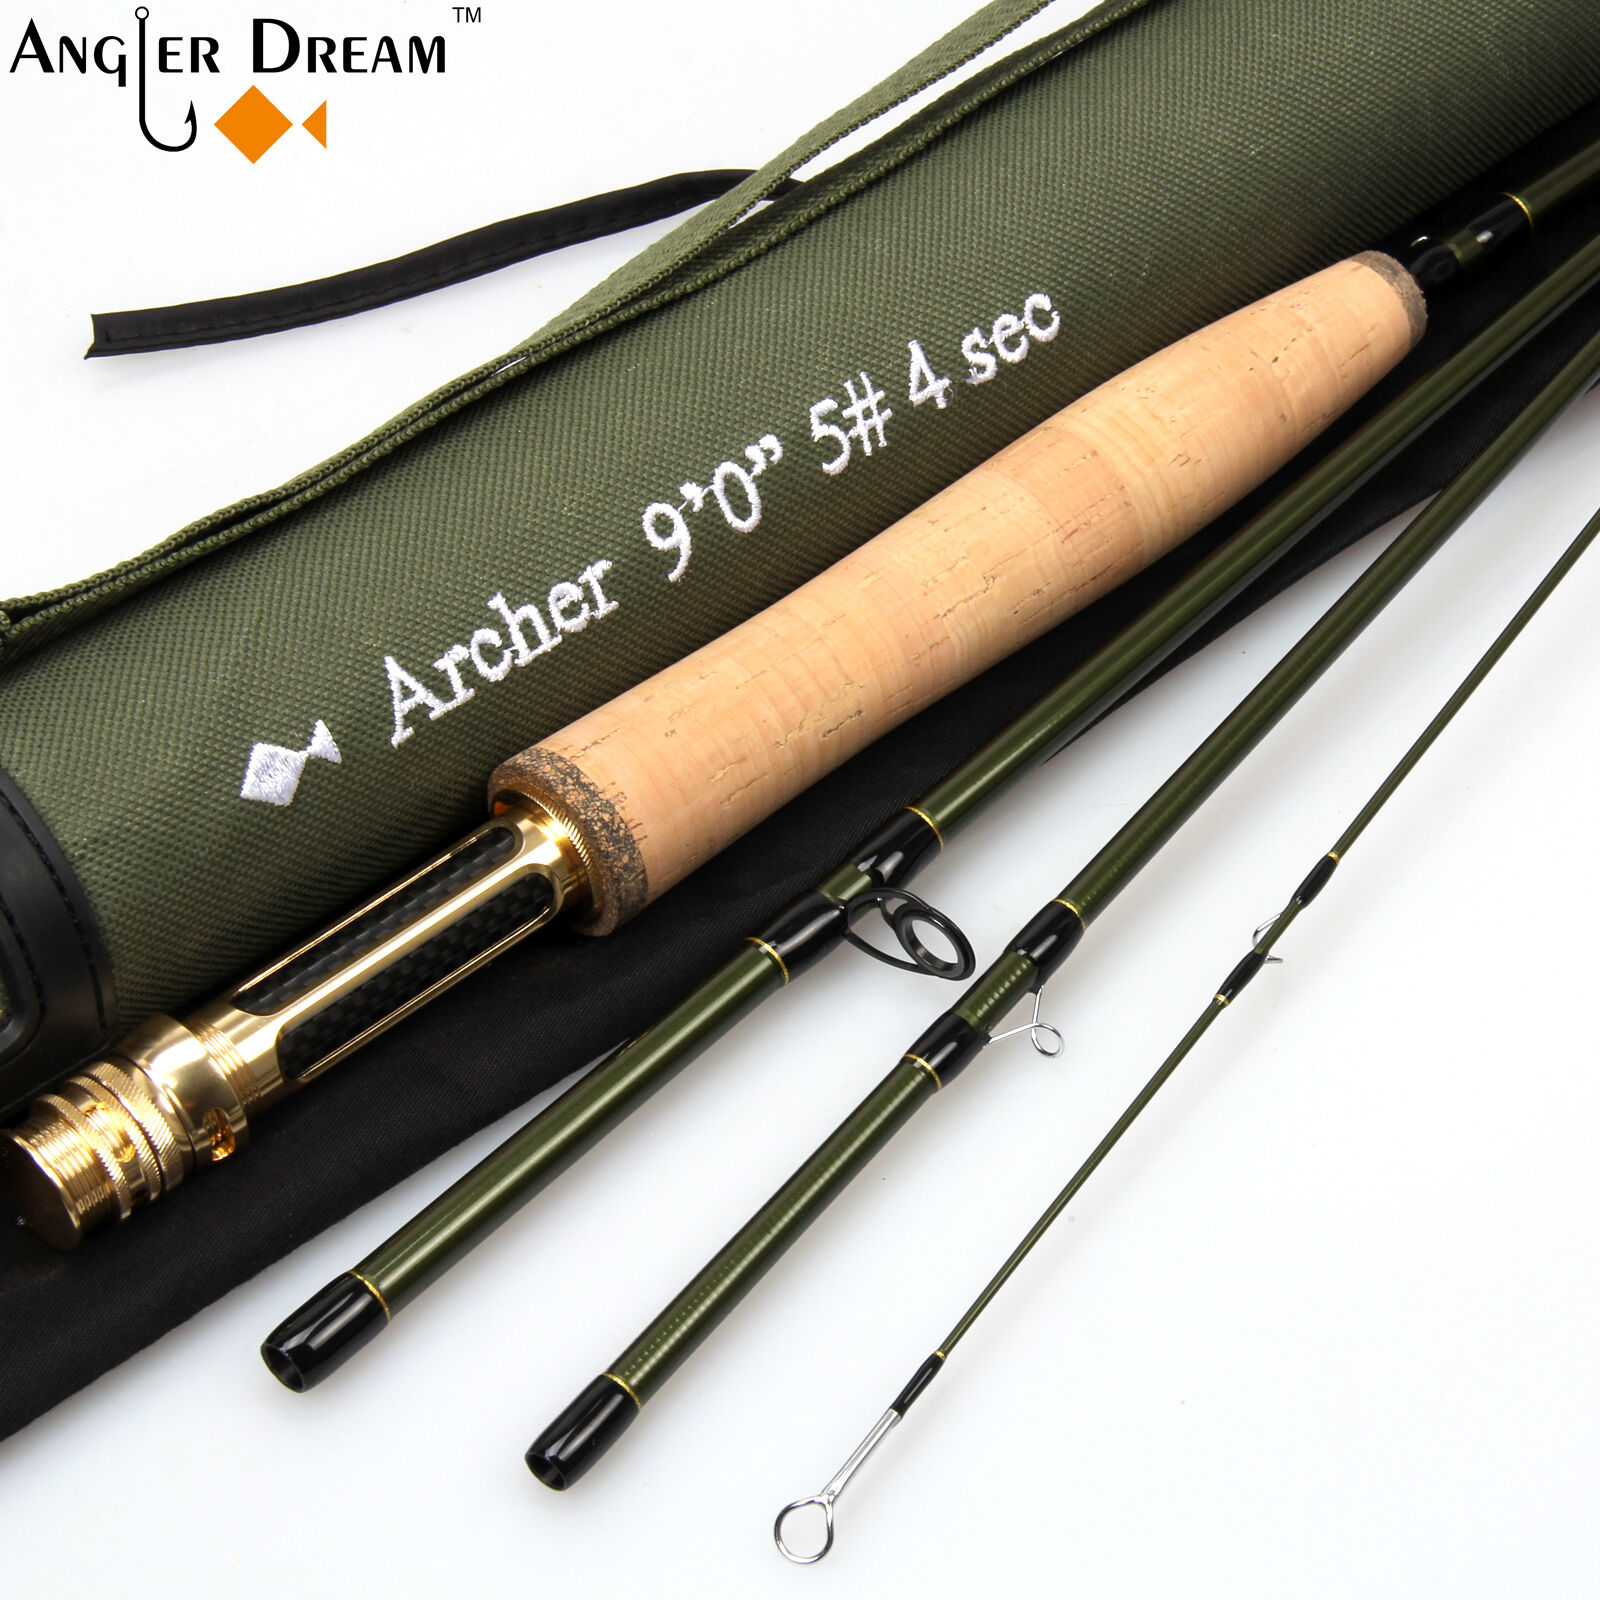 3458WT Fly Rod 9FT Fast Action Carbon Fiber Fly Fishing Rod & Cordura Tube